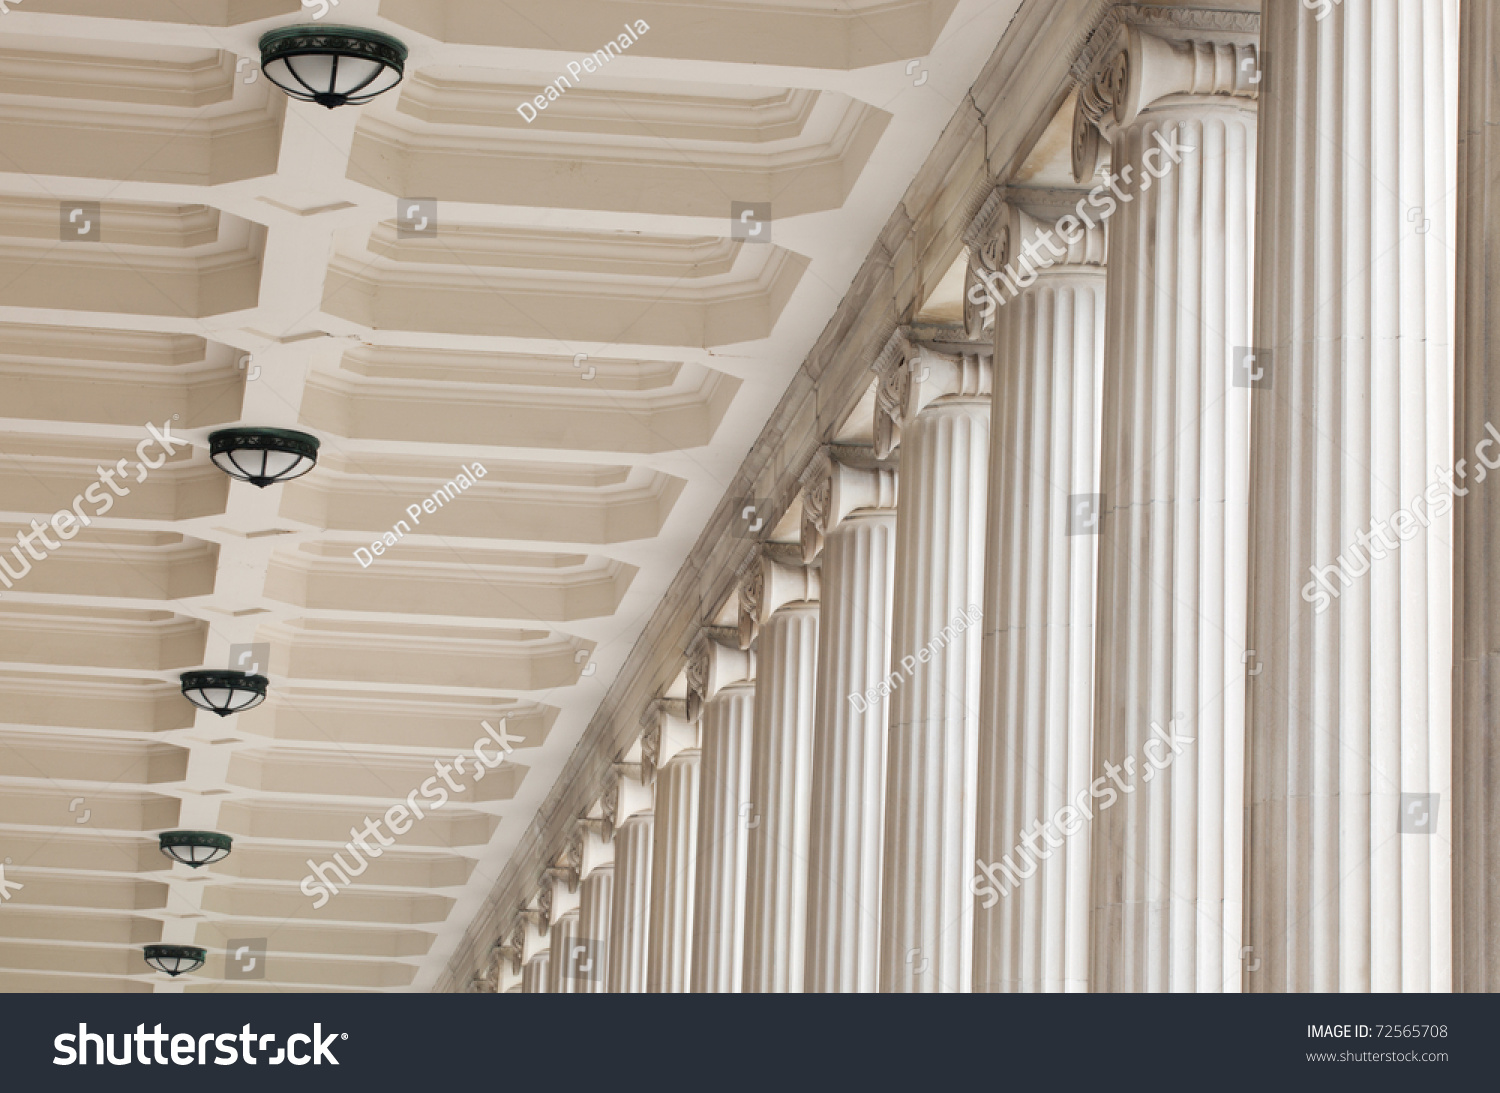 Classic Fluted Stone Architectural Columns Ceiling Stock Photo ...